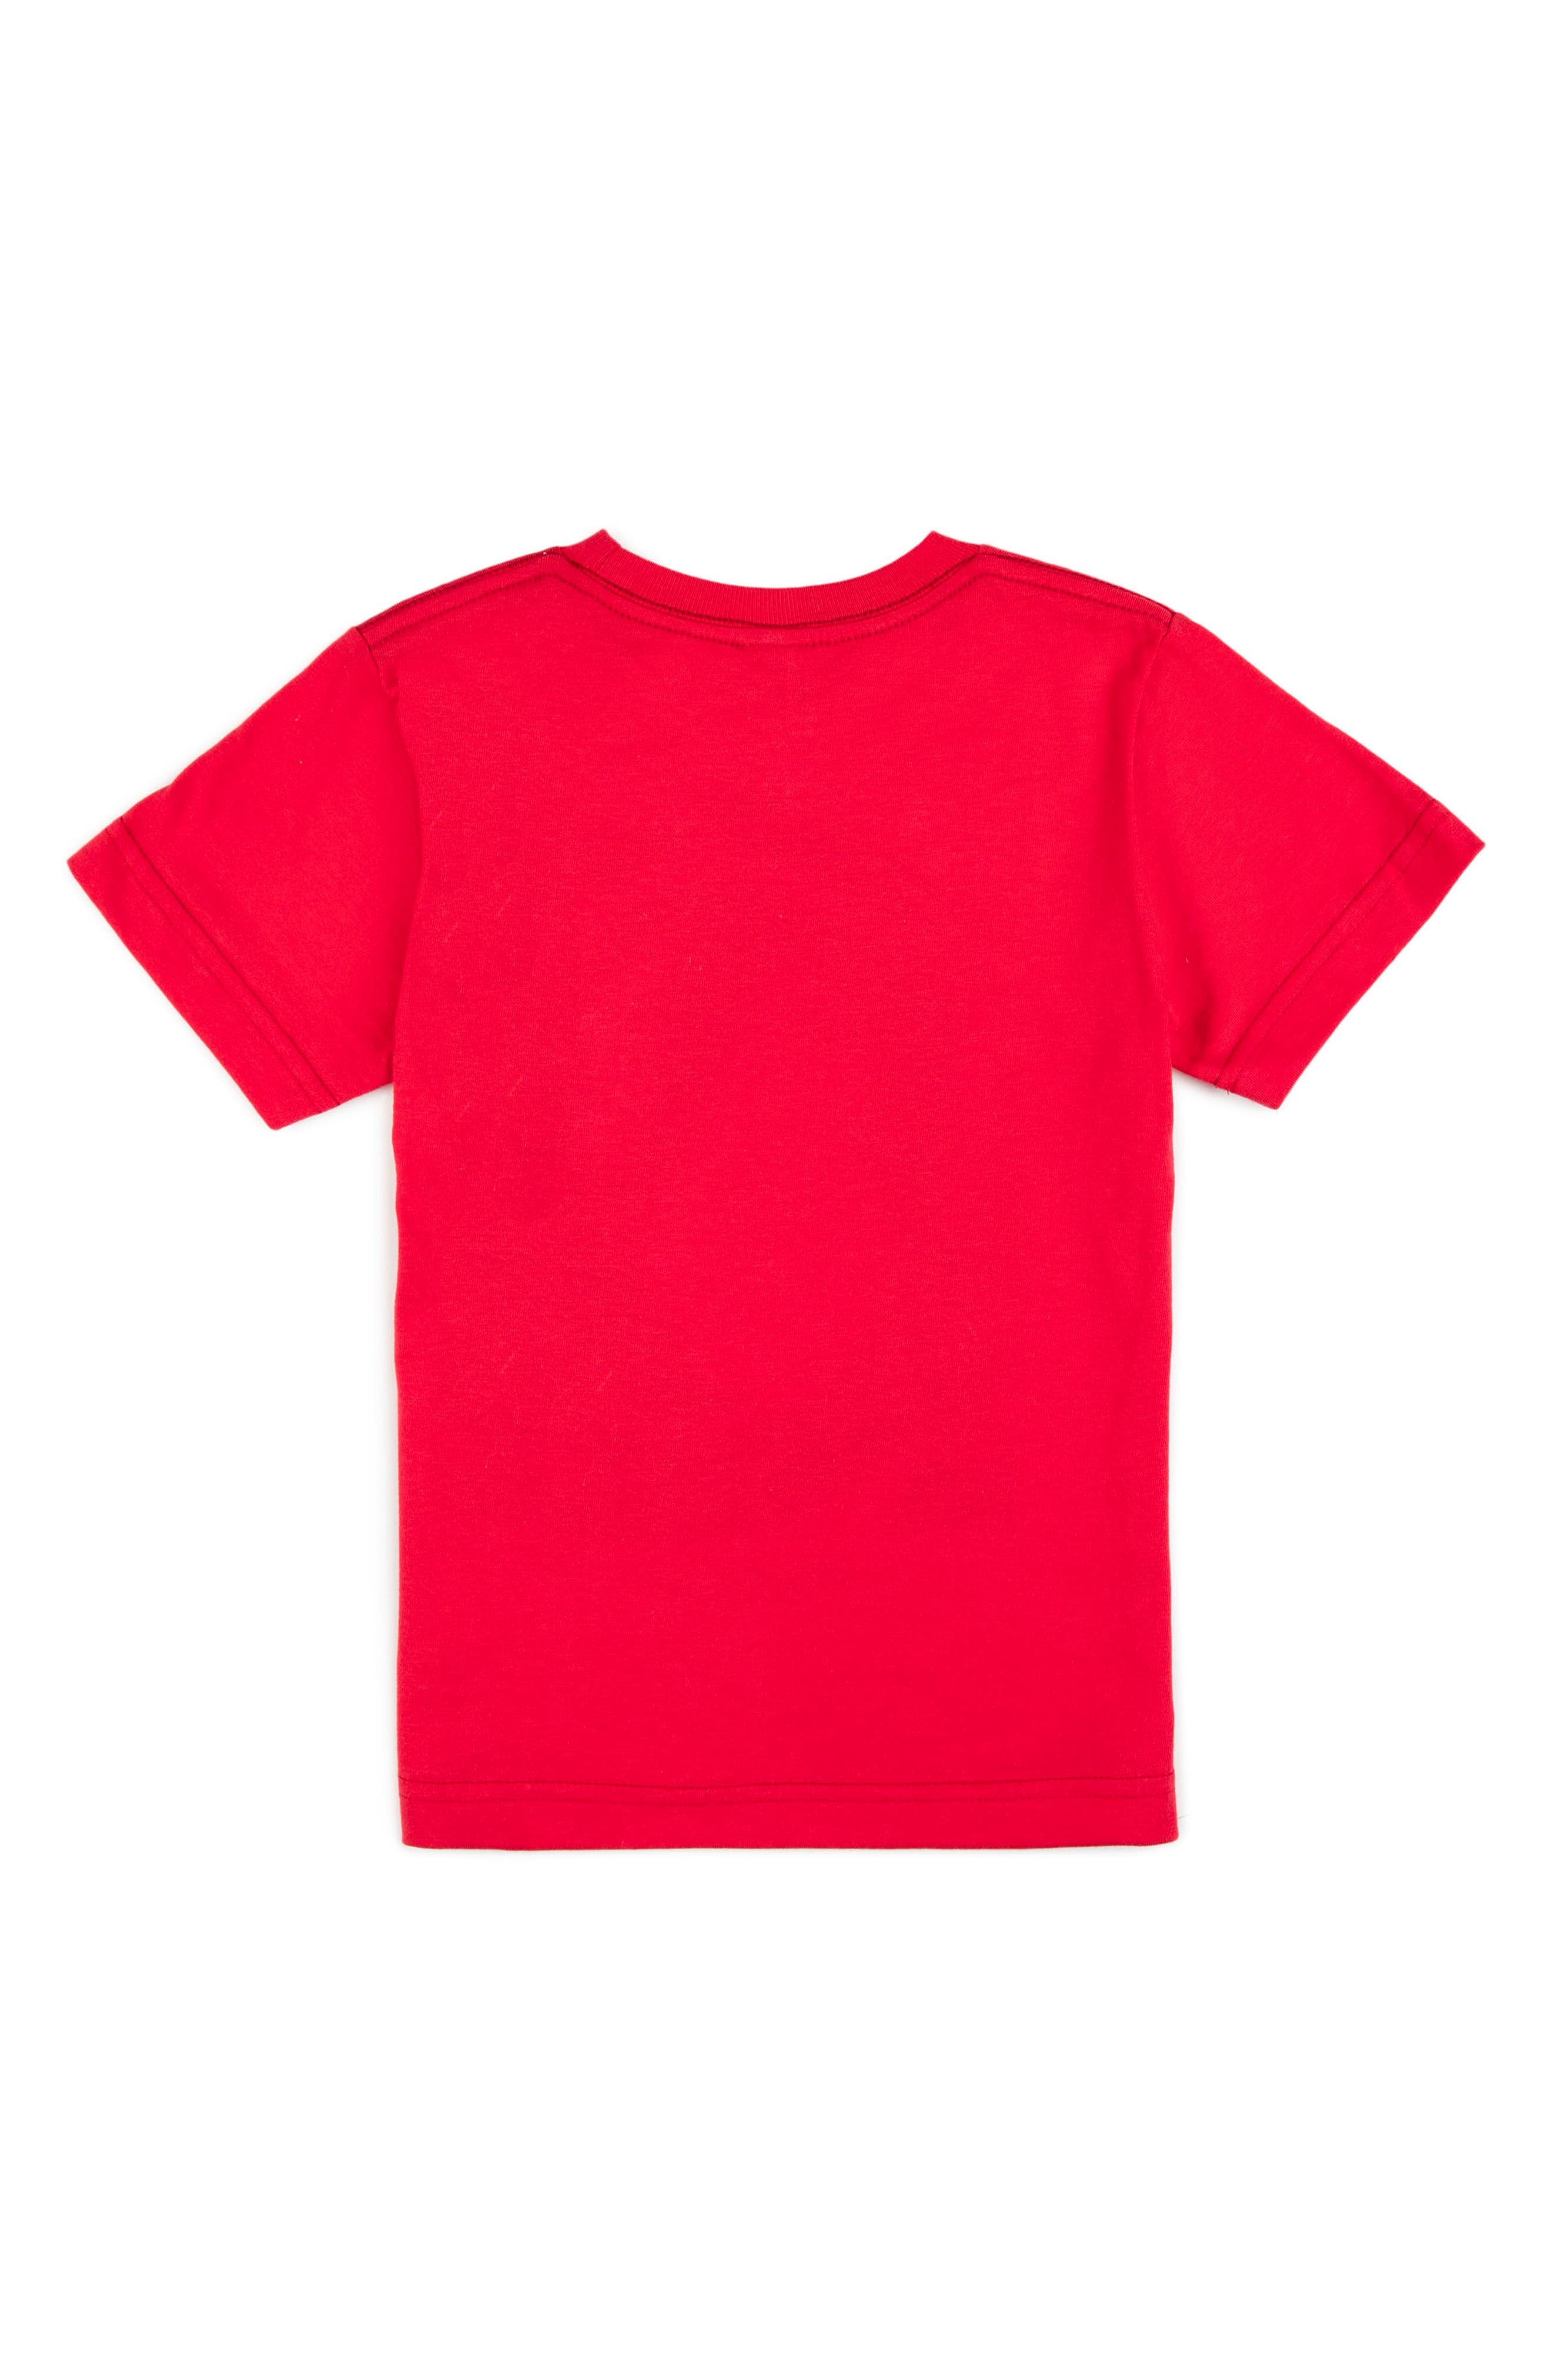 Glitch Stone Graphic T-Shirt,                             Alternate thumbnail 2, color,                             True Red